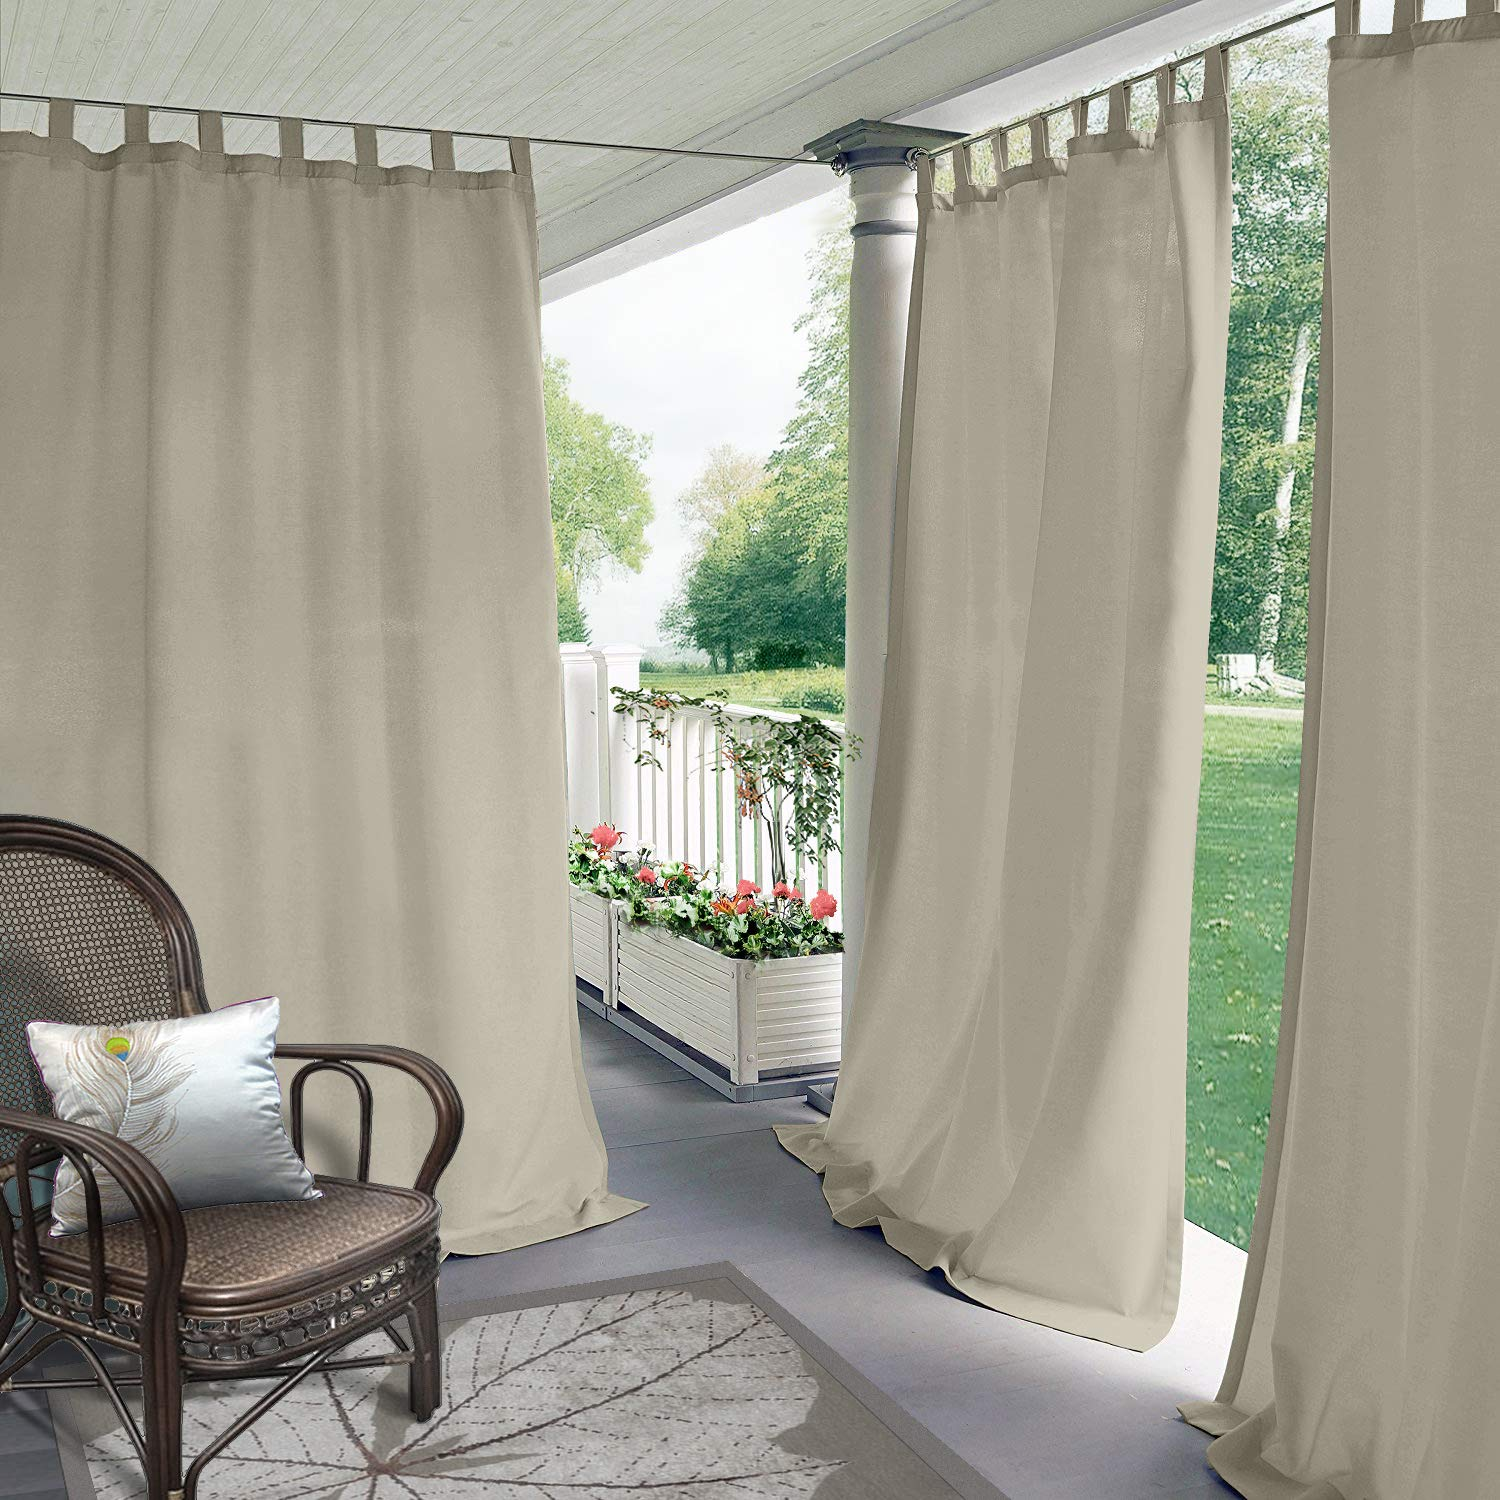 Cololeaf Indoor/Outdoor Tab Top Curtain Waterproof for Patio  Porch  Gazebo  Pergola   Cabana   Dock  Beach Home - Beige 84W x 120L Inch (1 Panel)